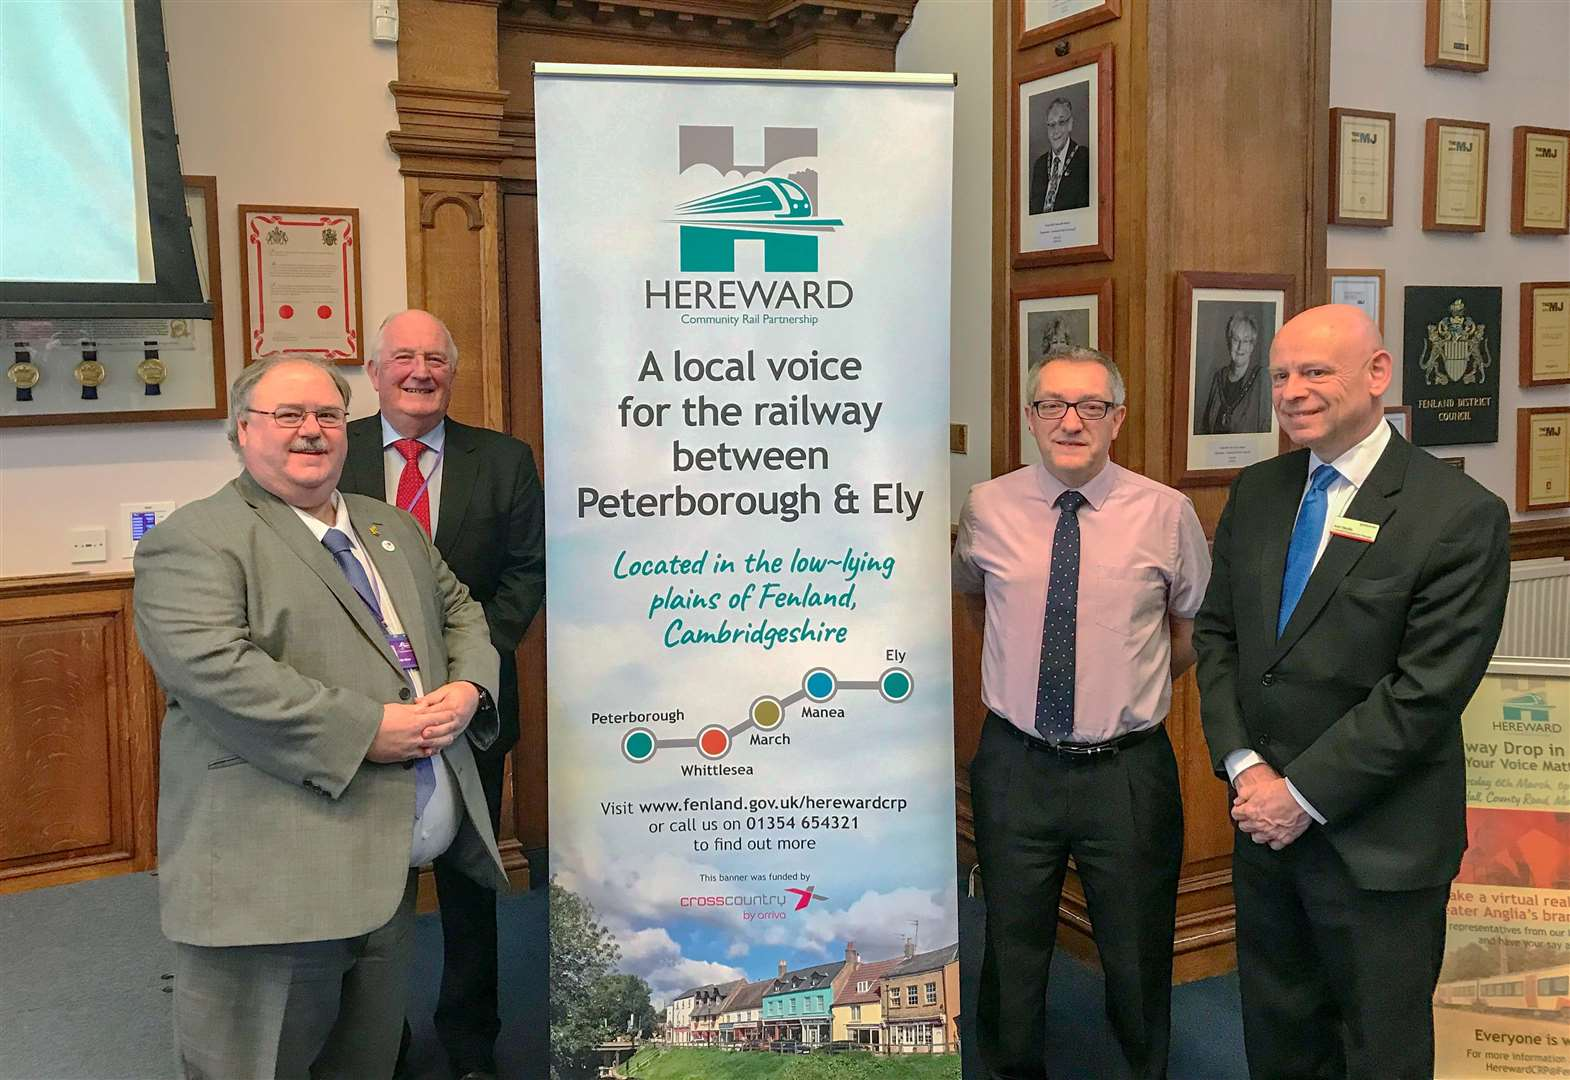 Pictured at the relaunch event are, from left, Cllr David Oliver, FDC's Portfolio Holder for Transport, Cllr Kit Owen, Paul Nelson, Hereward CRP Chairman and Passenger Transport Manager at Cambridgeshire County Council, and Alan Neville, Customer Engagement Manager at Greater Anglia.(7218848)